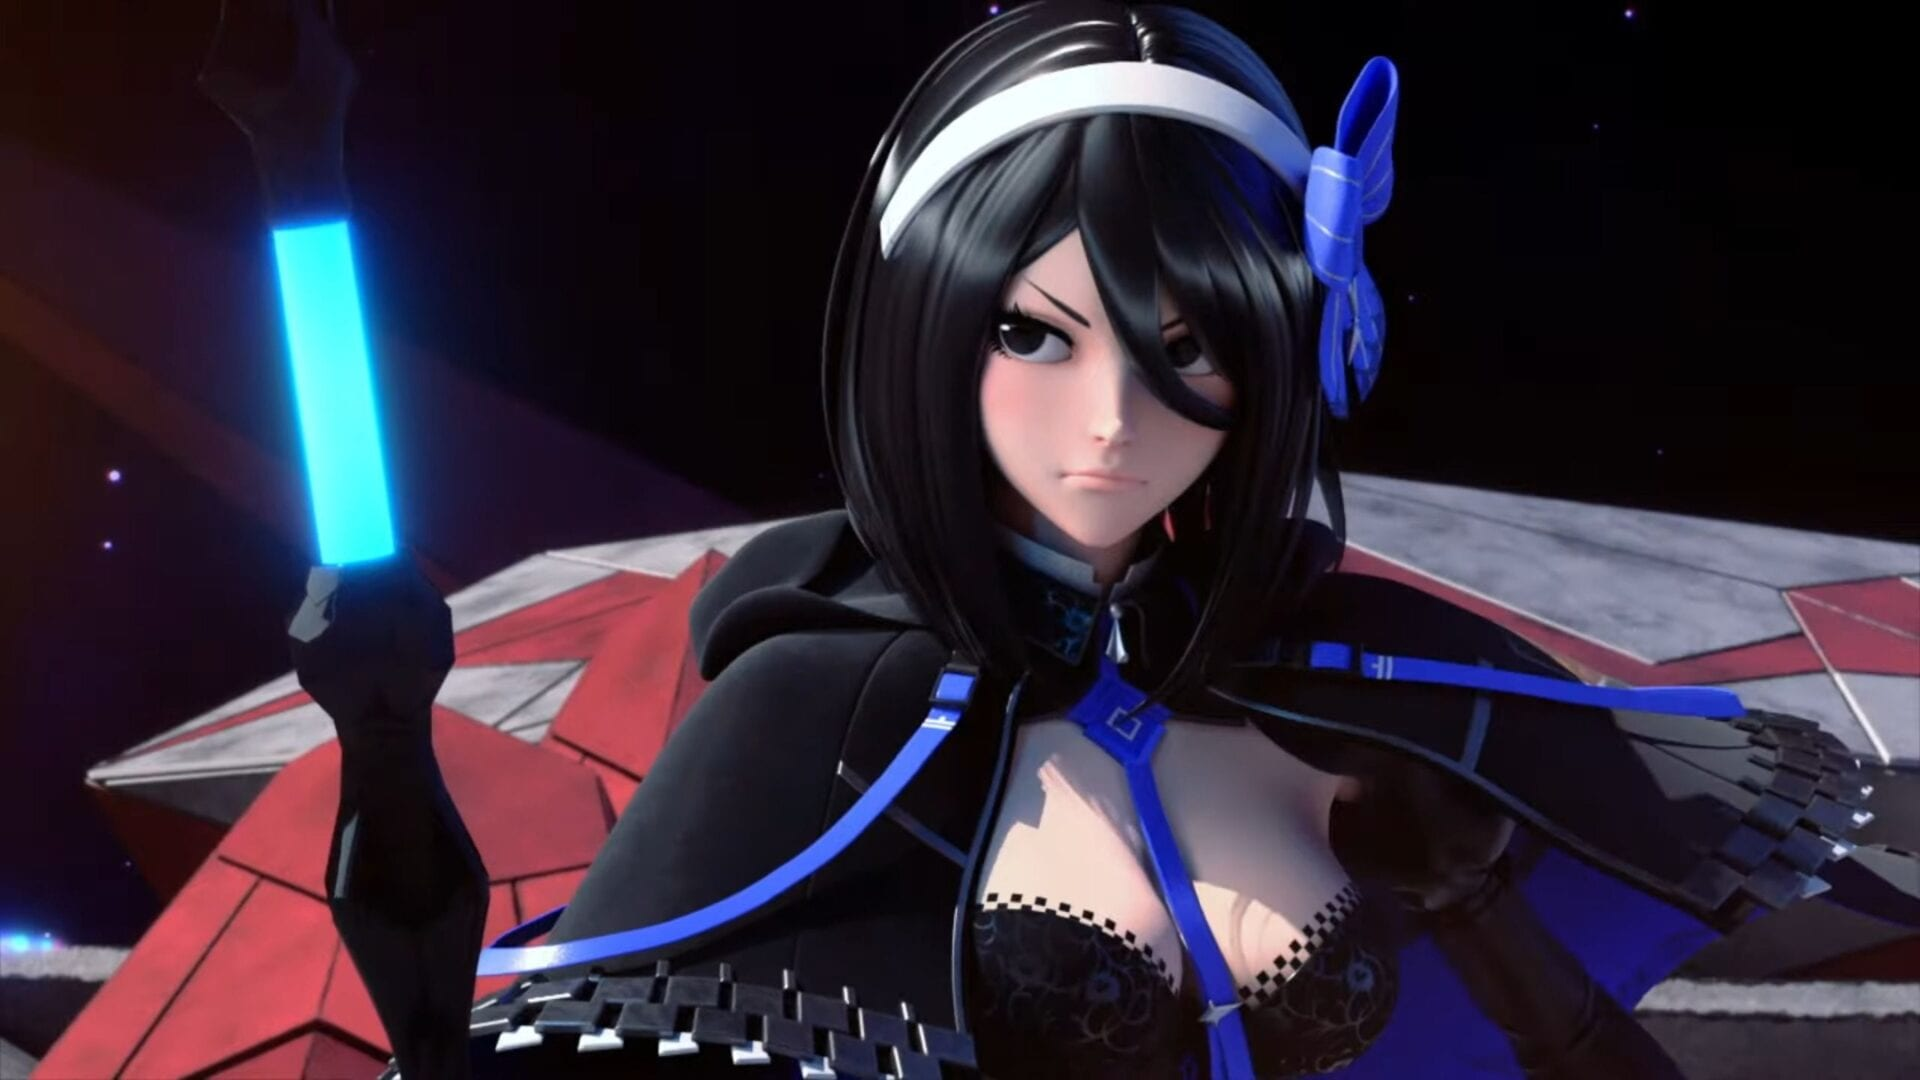 Phantasy Star On-line 2 Cinematic Trailer Is All About Episode 6 Replace 1